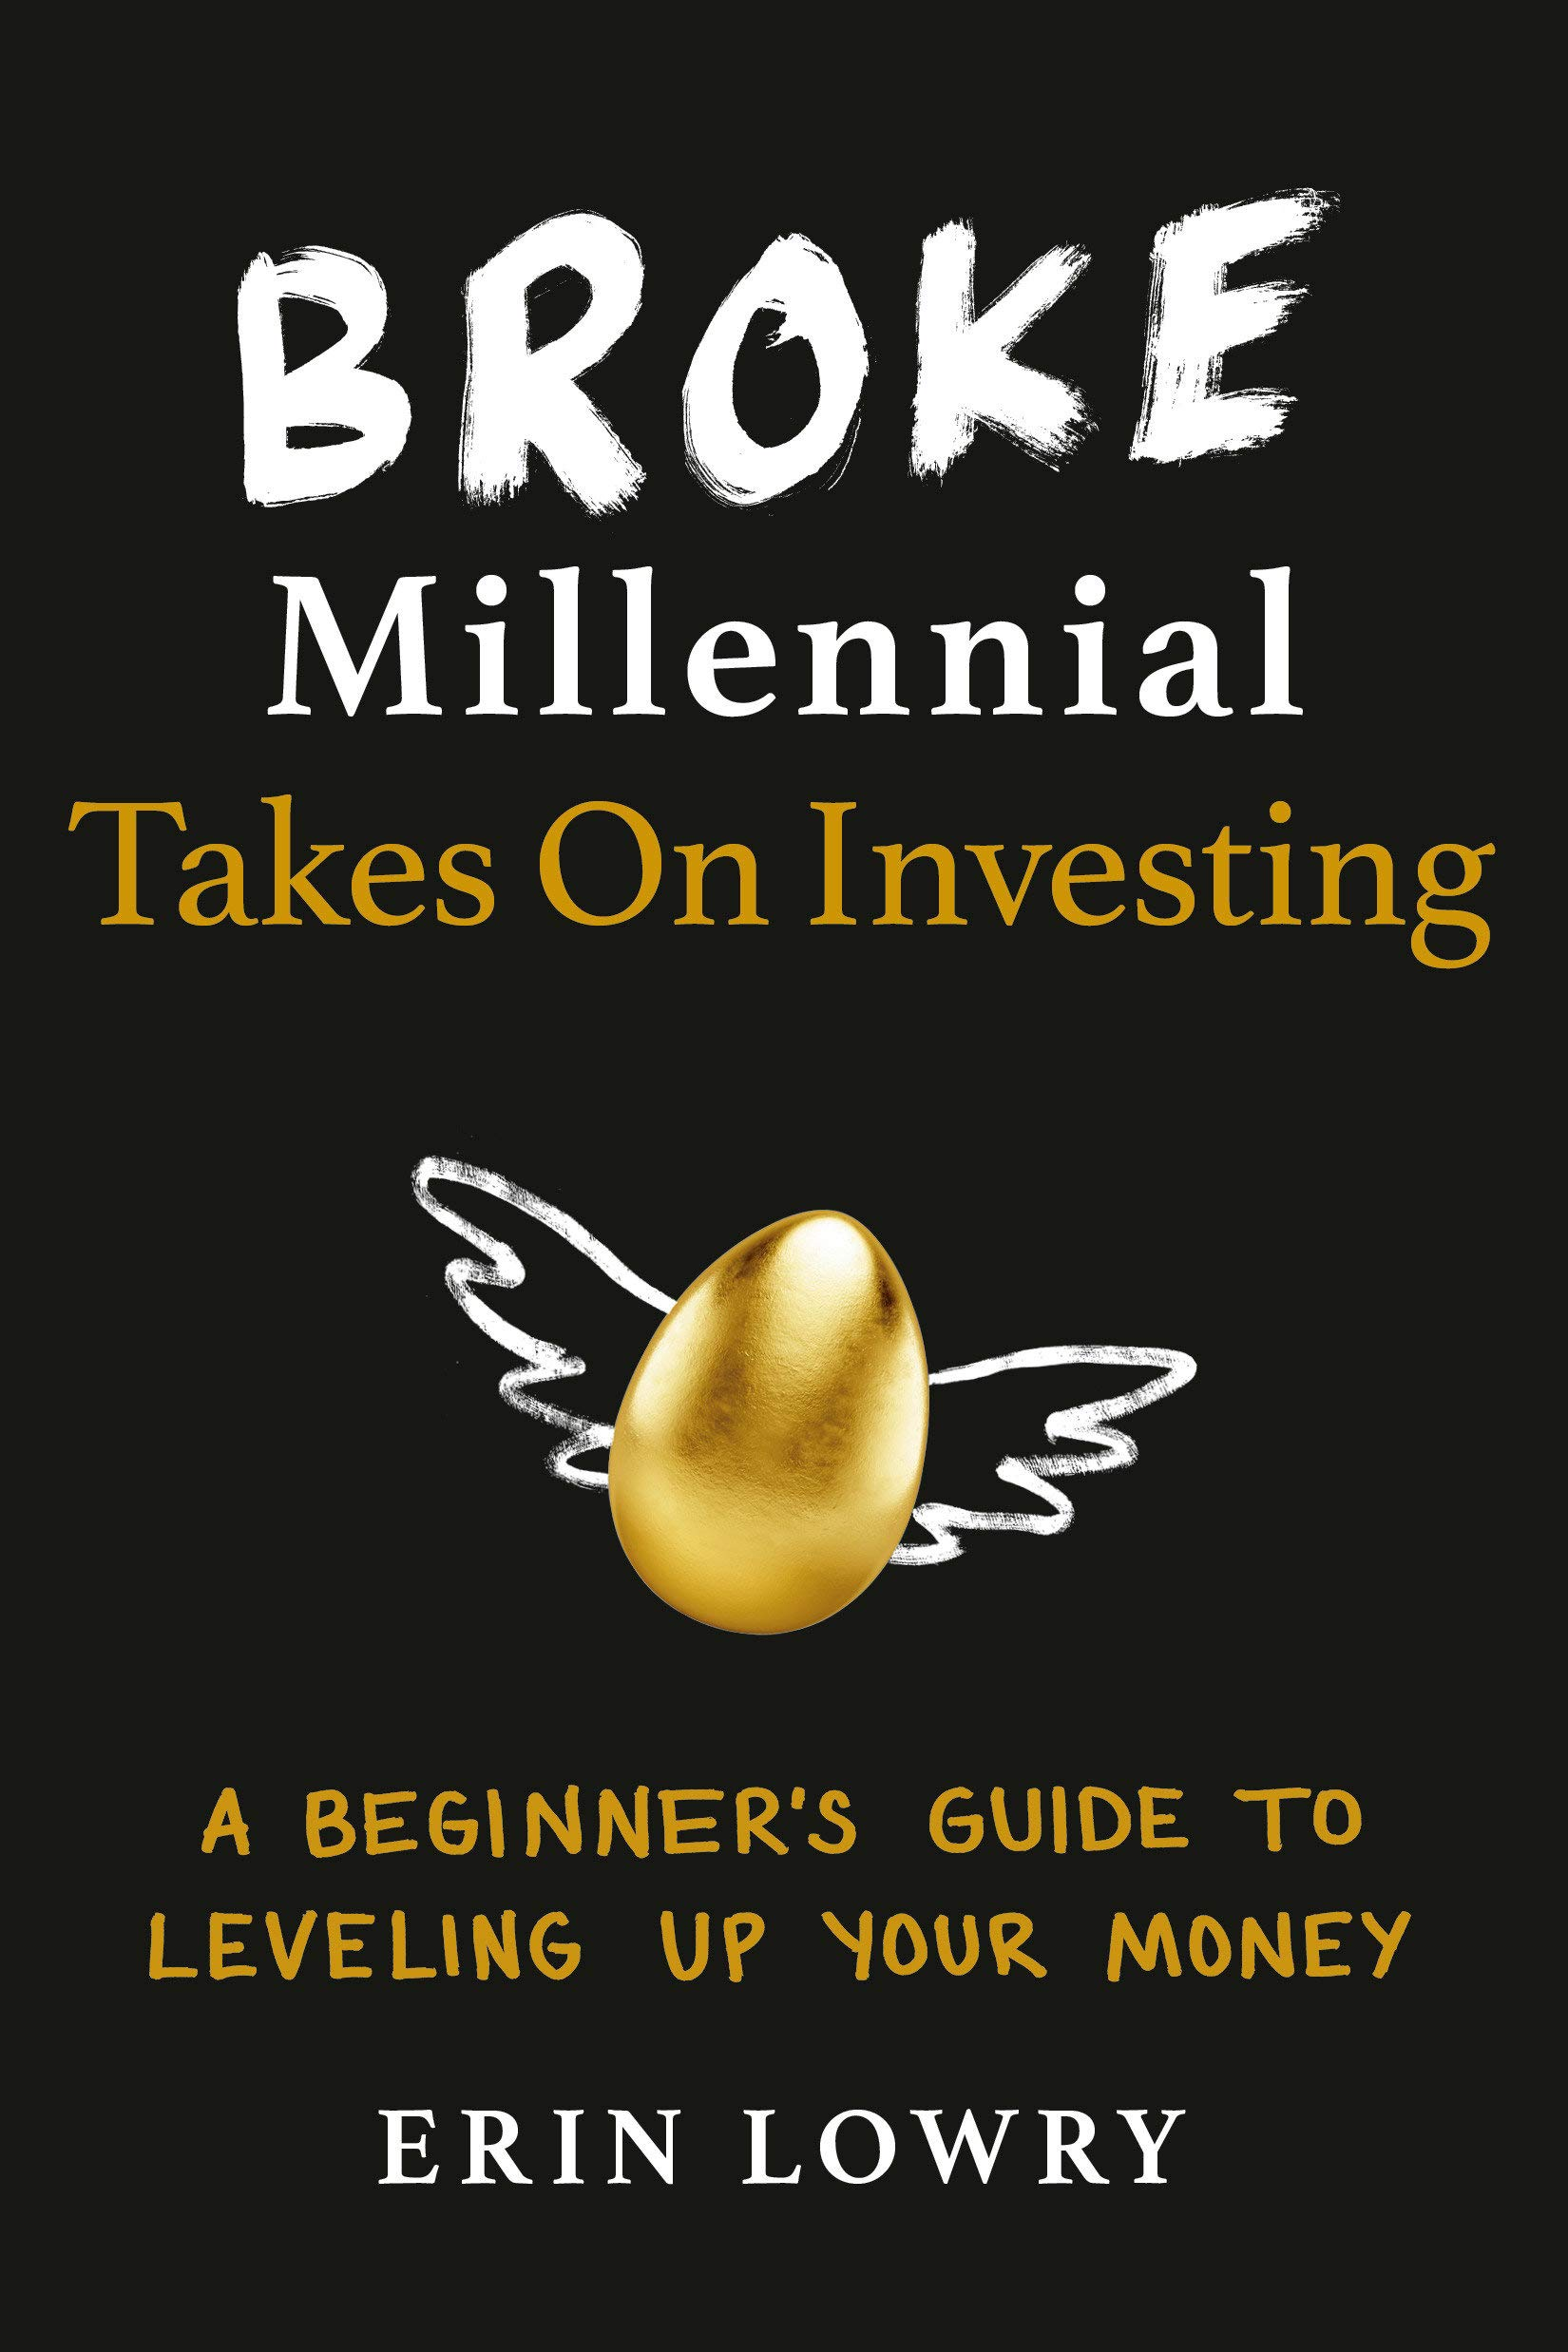 Image OfBroke Millennial Takes On Investing: A Beginner's Guide To Leveling Up Your Money